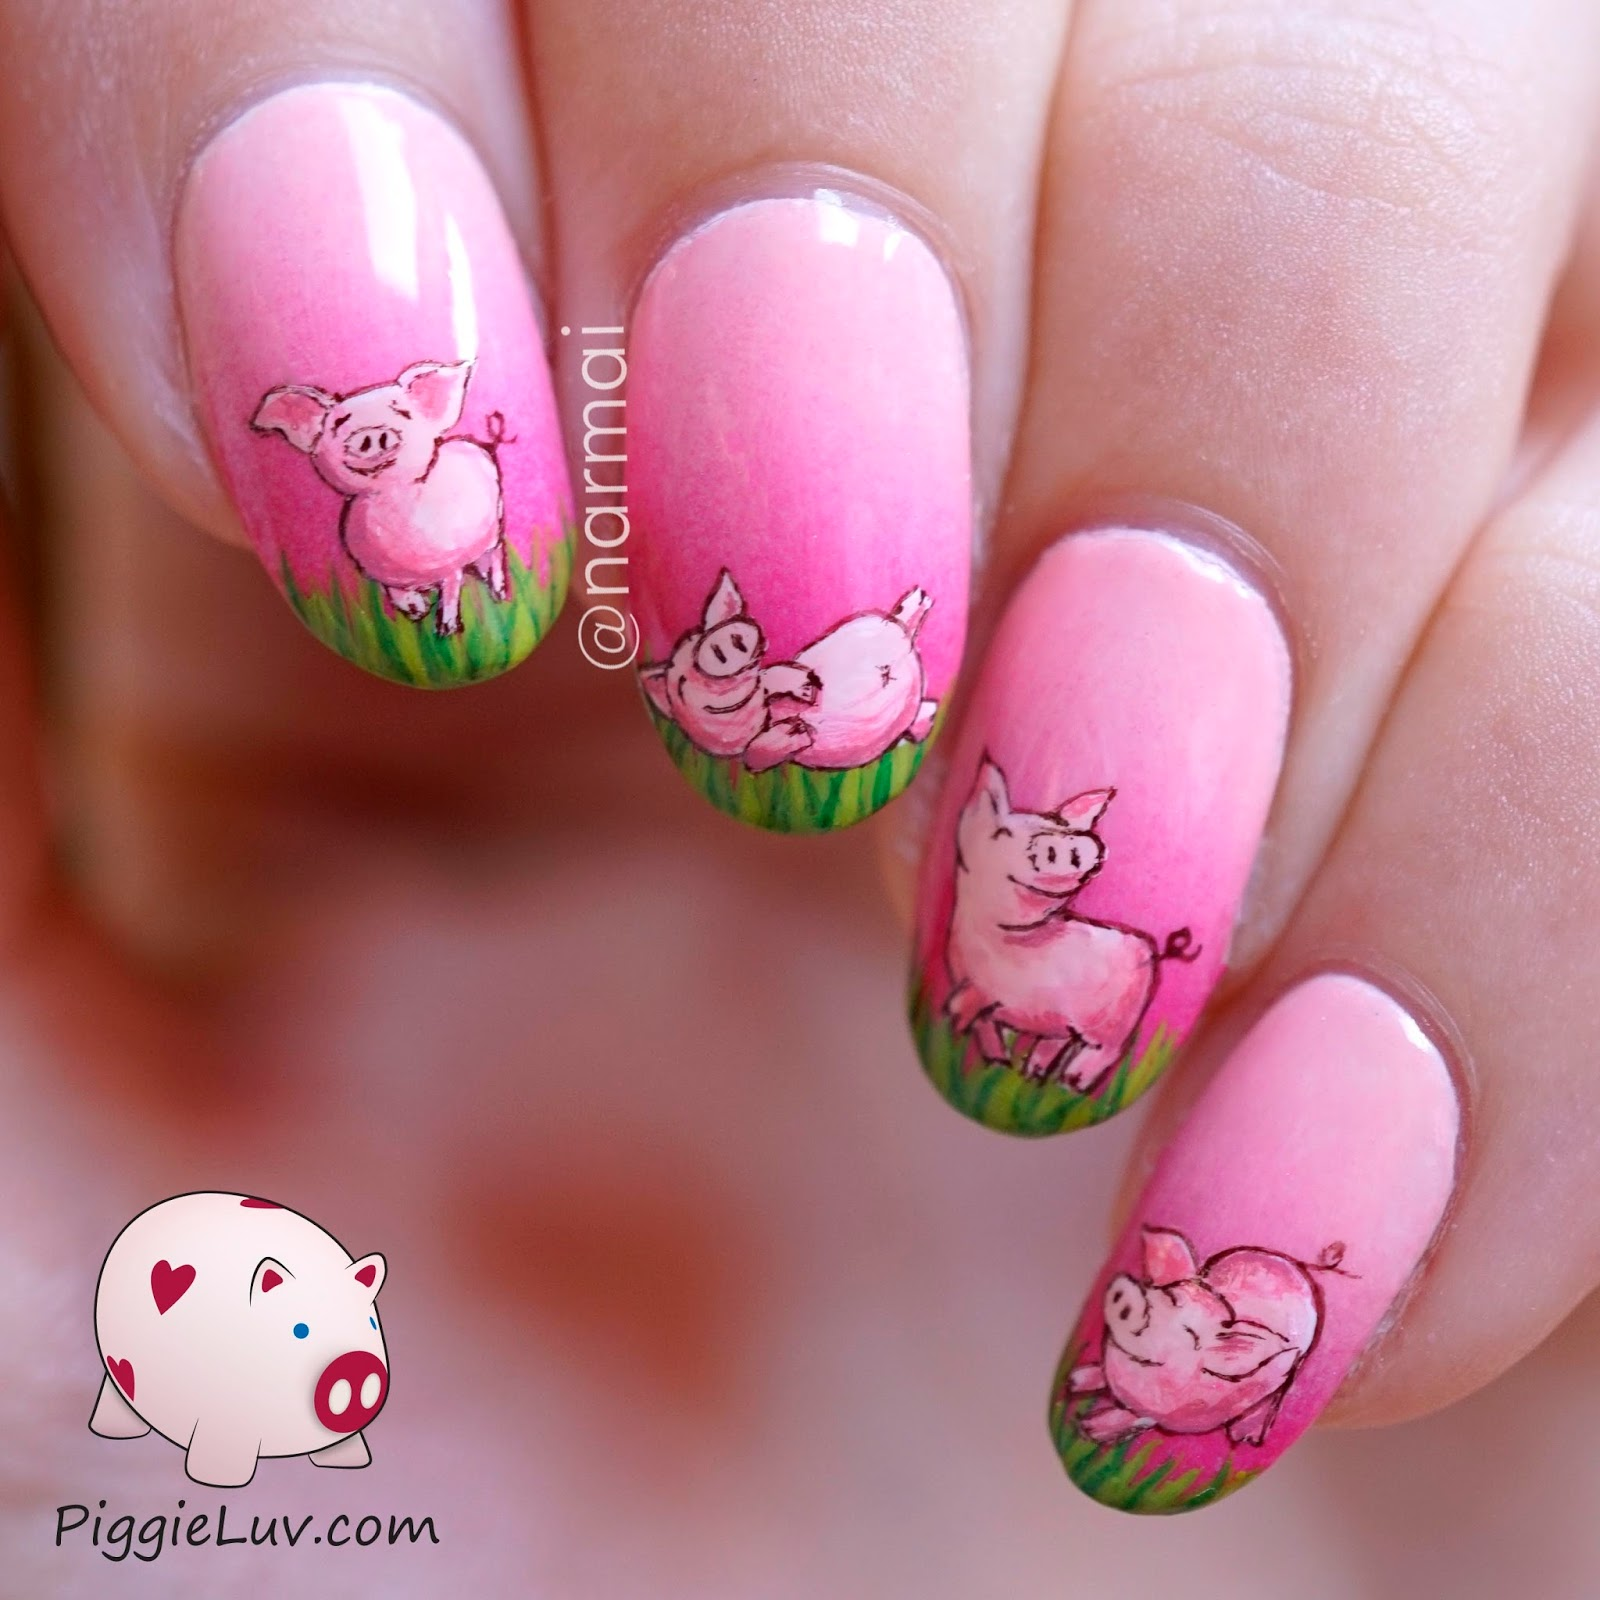 Adorable Nail Designs: PiggieLuv: Cute Piglet Nail Art For My 3rd Blogiversary